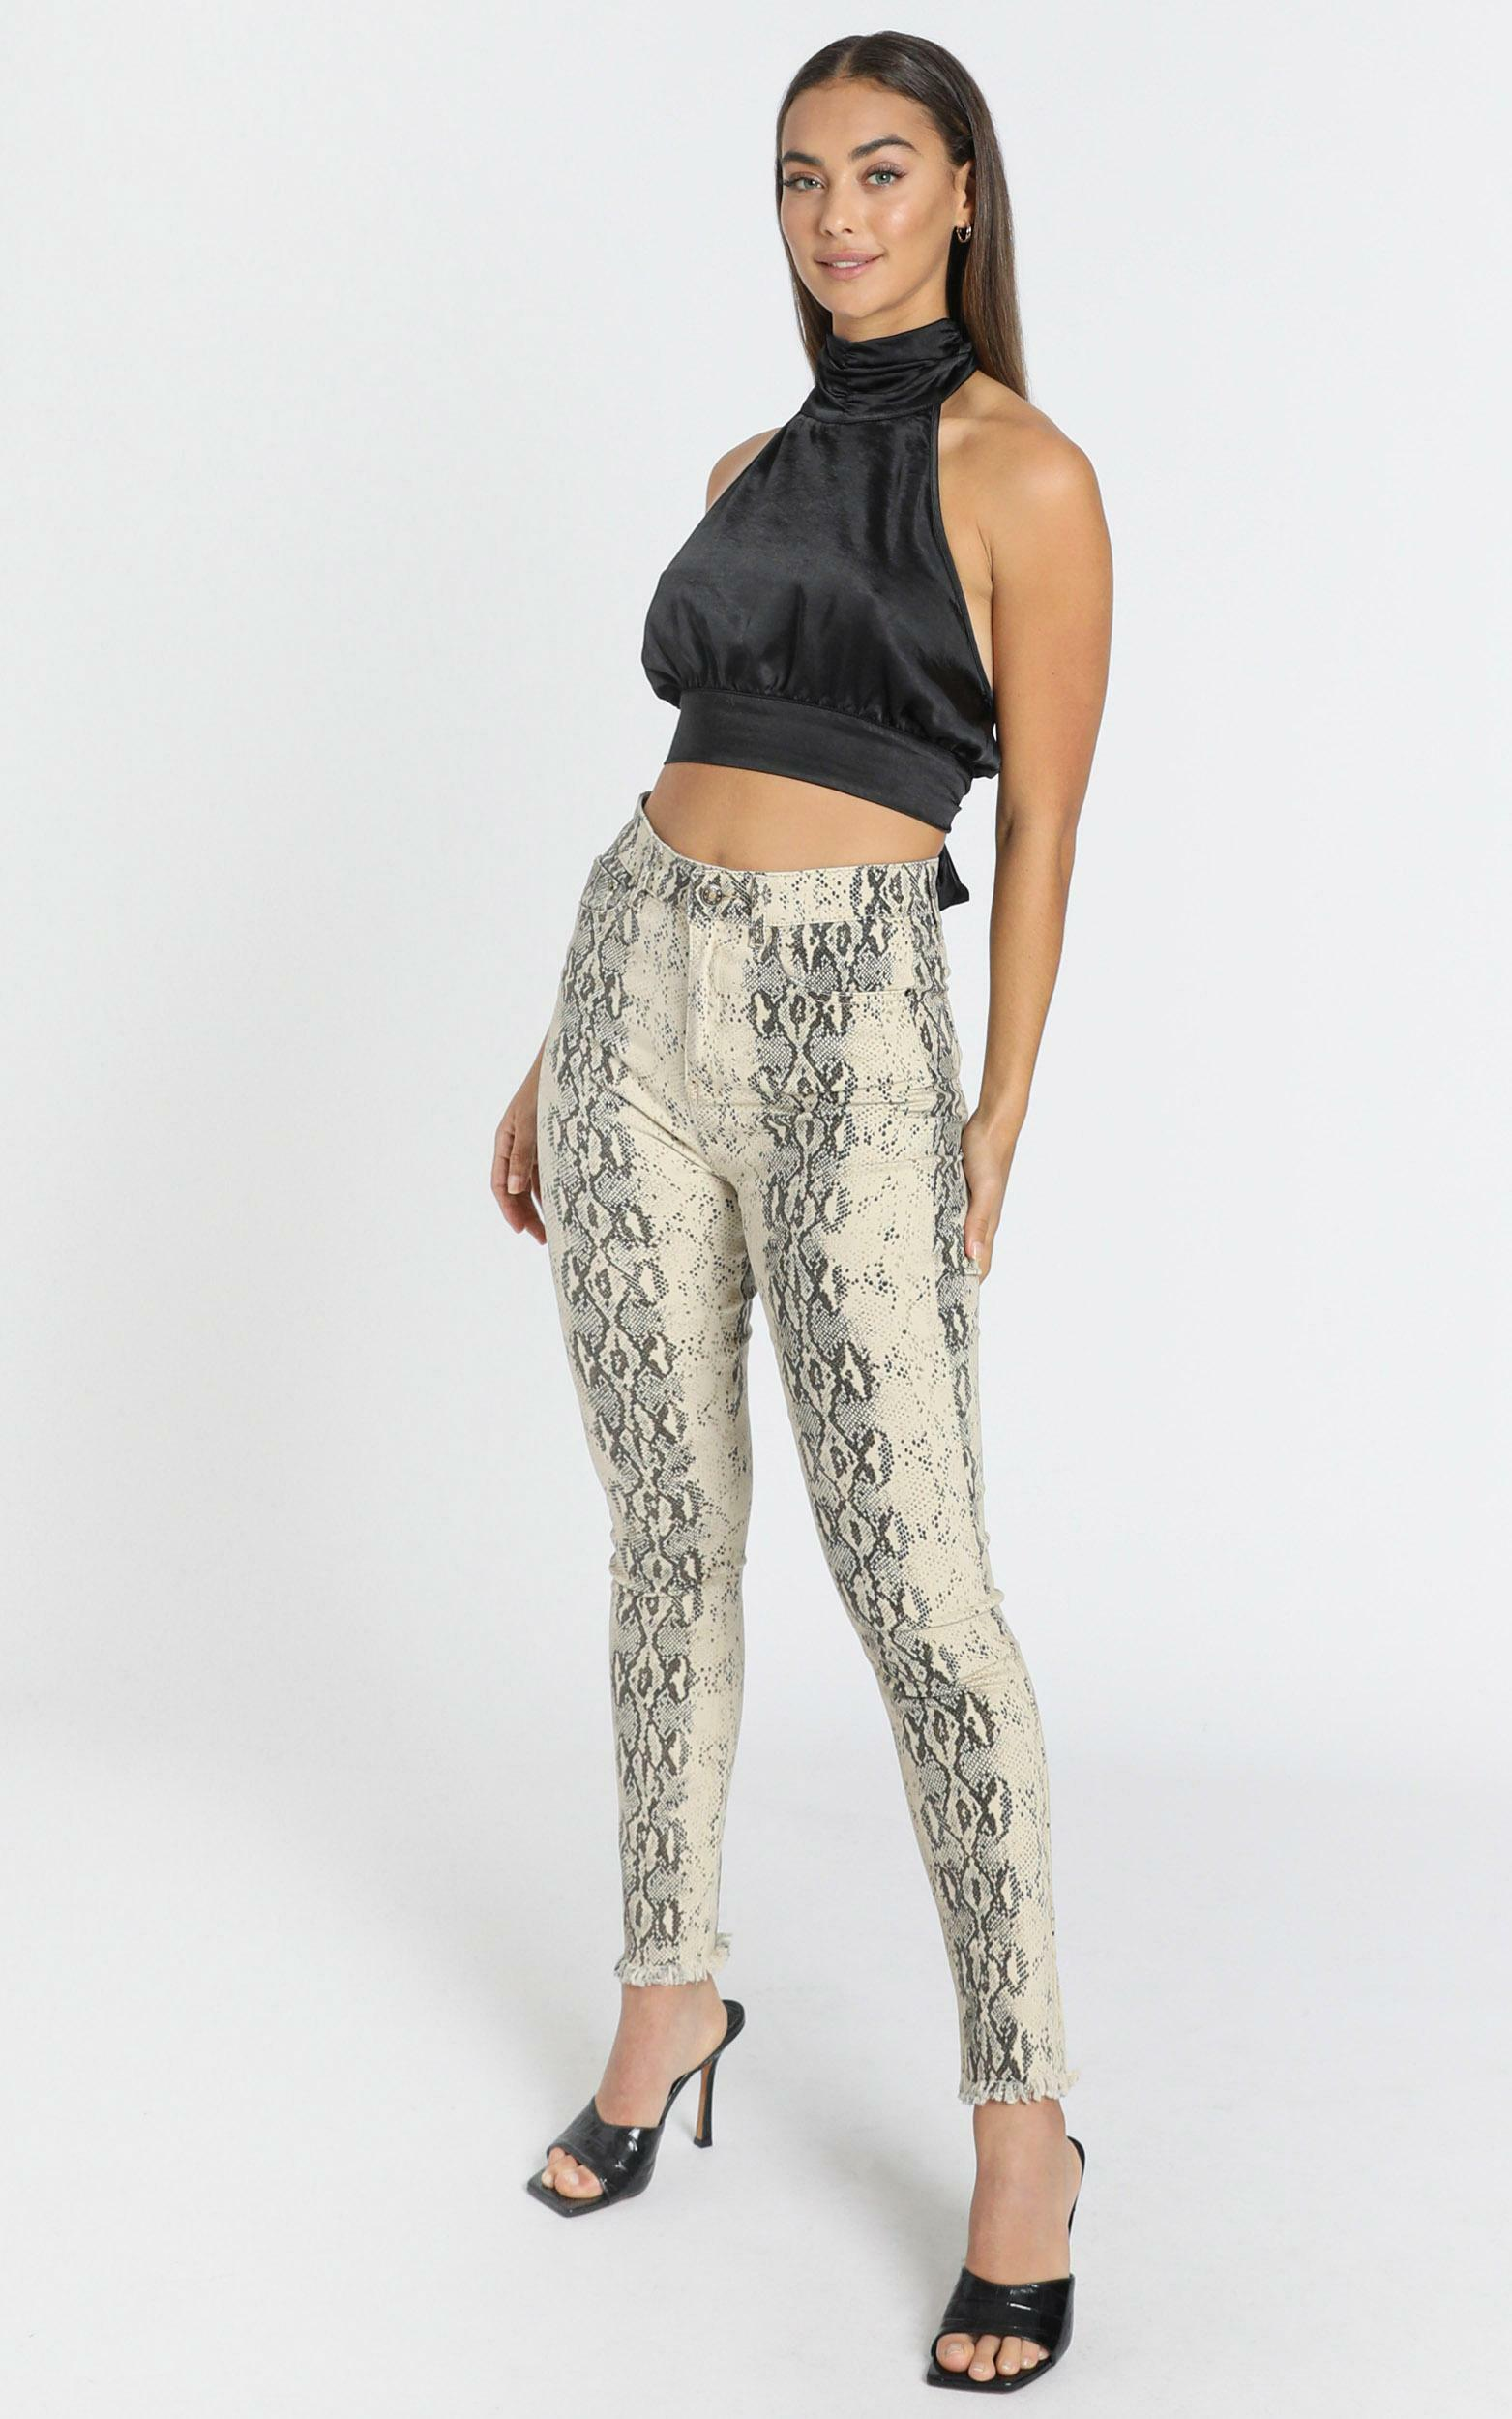 Lioness - Better Than Revenge Pants in Snake Print - 6 (XS), Beige, hi-res image number null